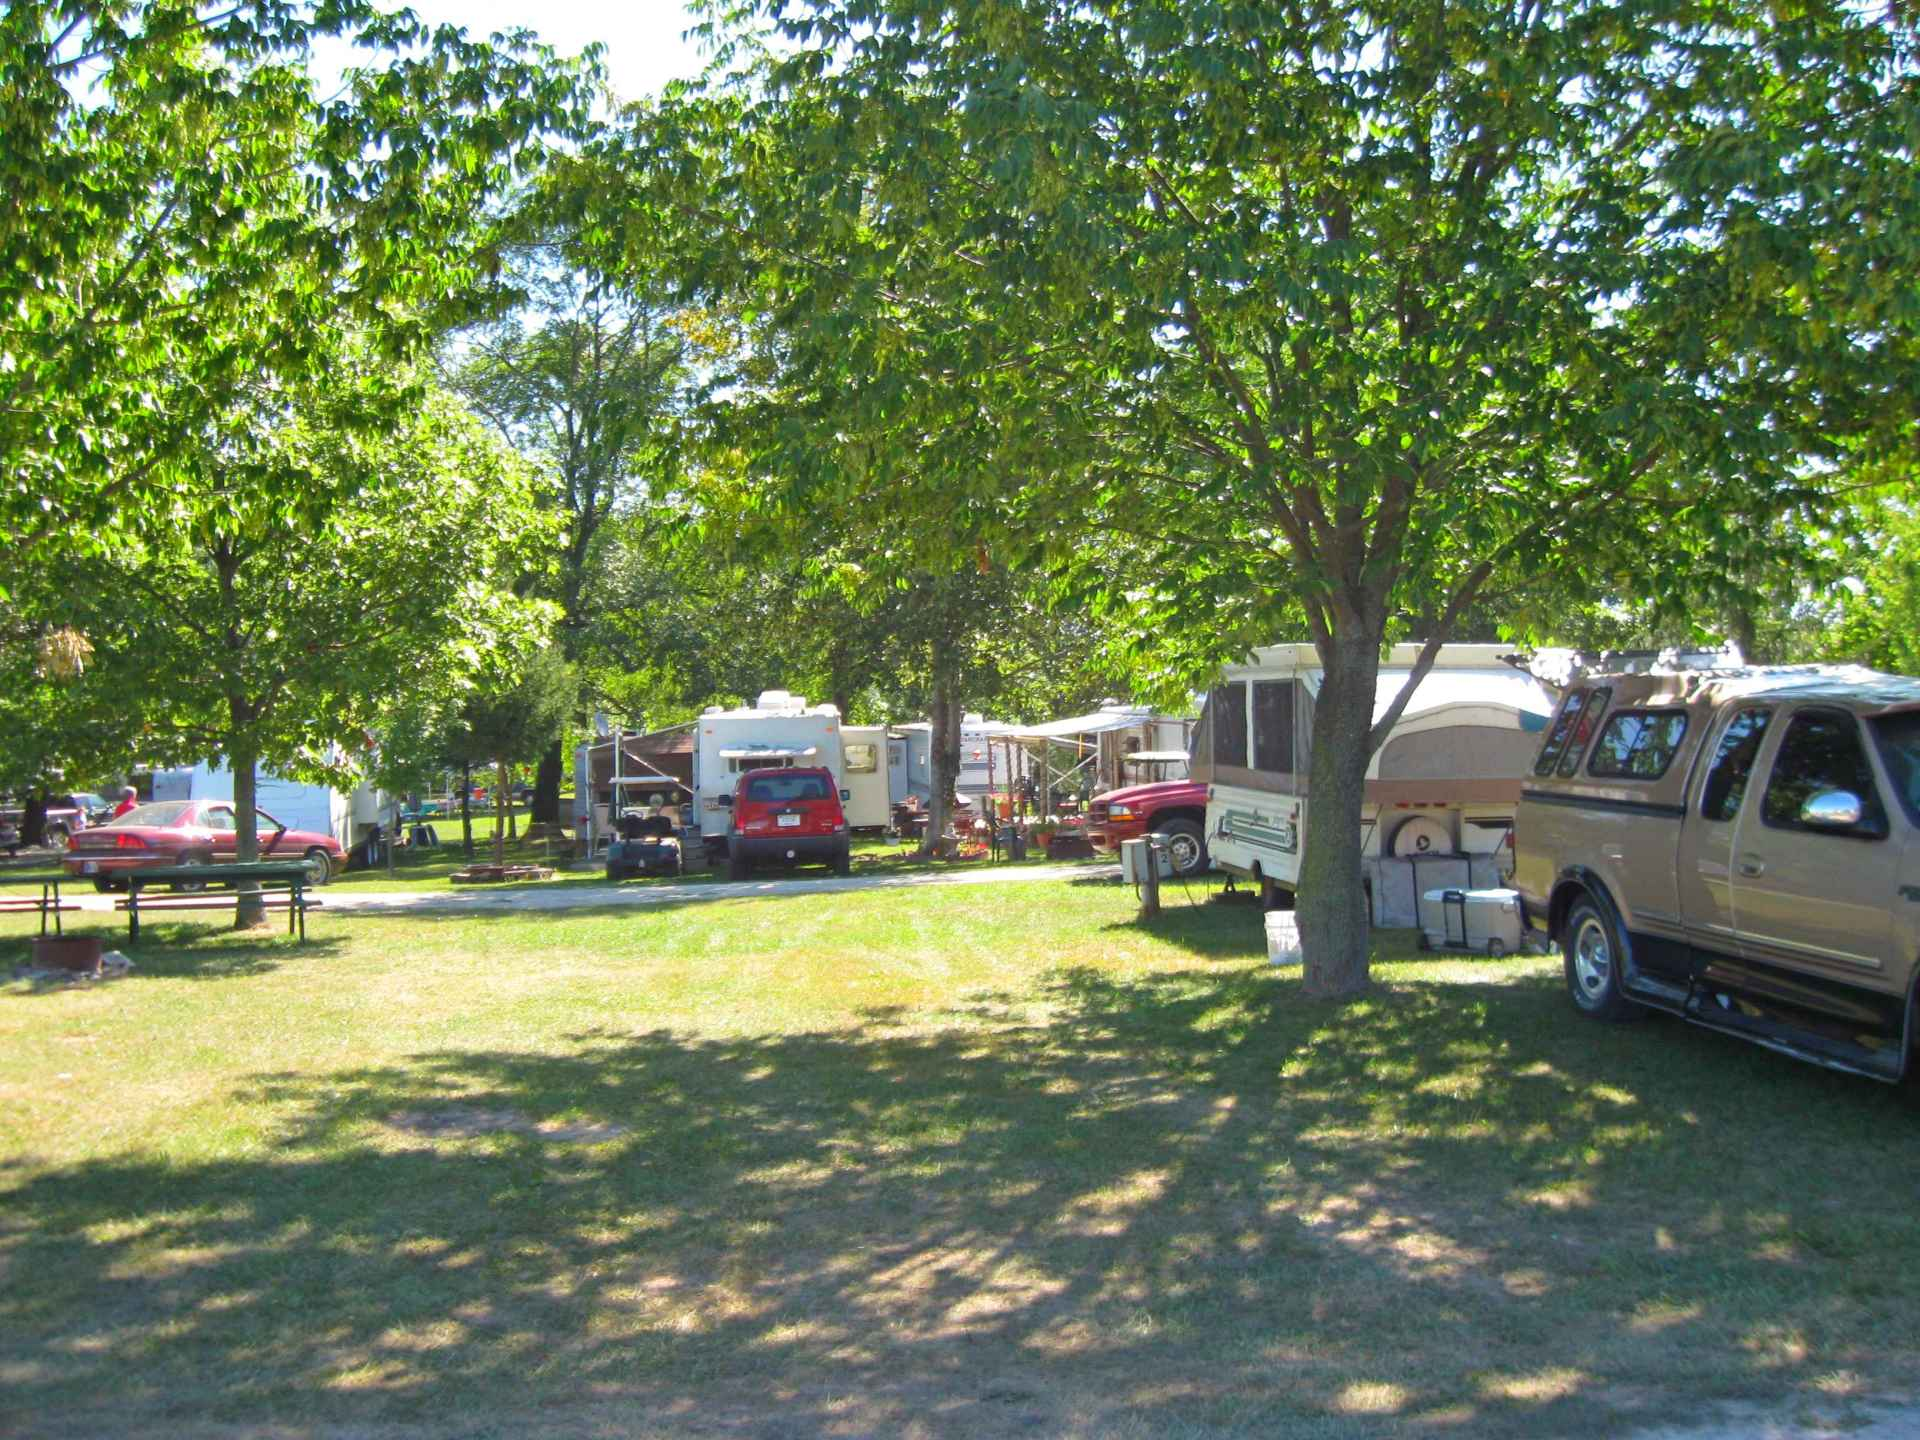 Image of campers set-up in campground